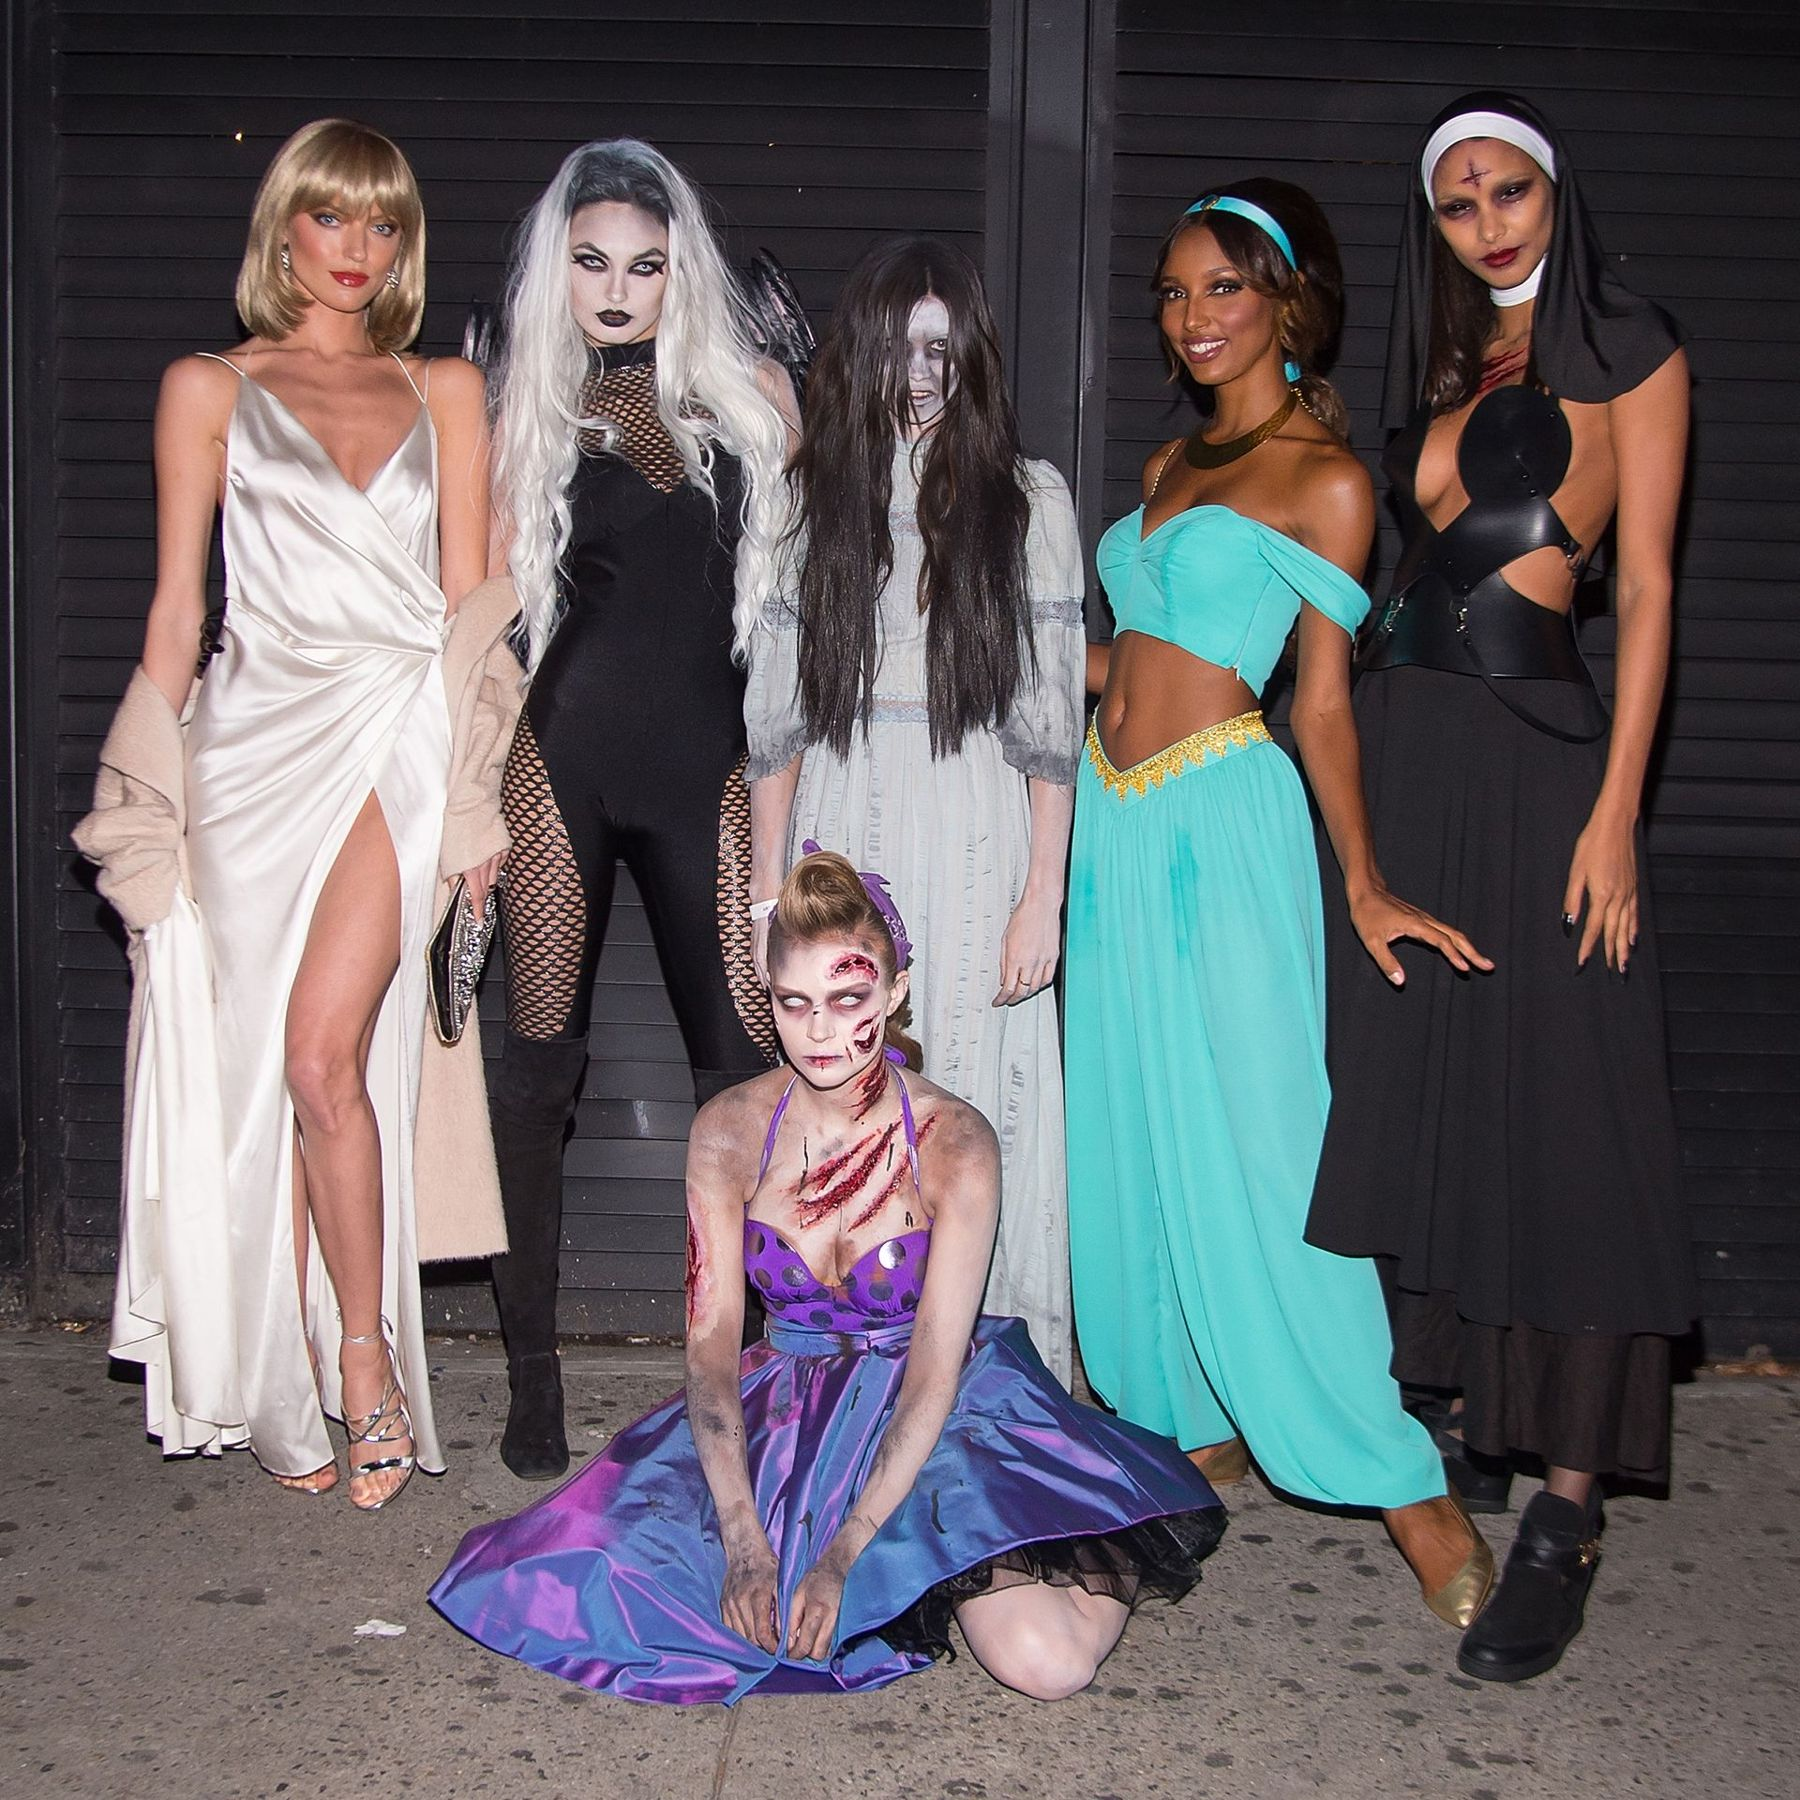 Frightfully good #Halloween costume inspiration from the @VictoriasSecret Angels: https://t.co/6d0ftMkeaU https://t.co/0bWWuSyXeH